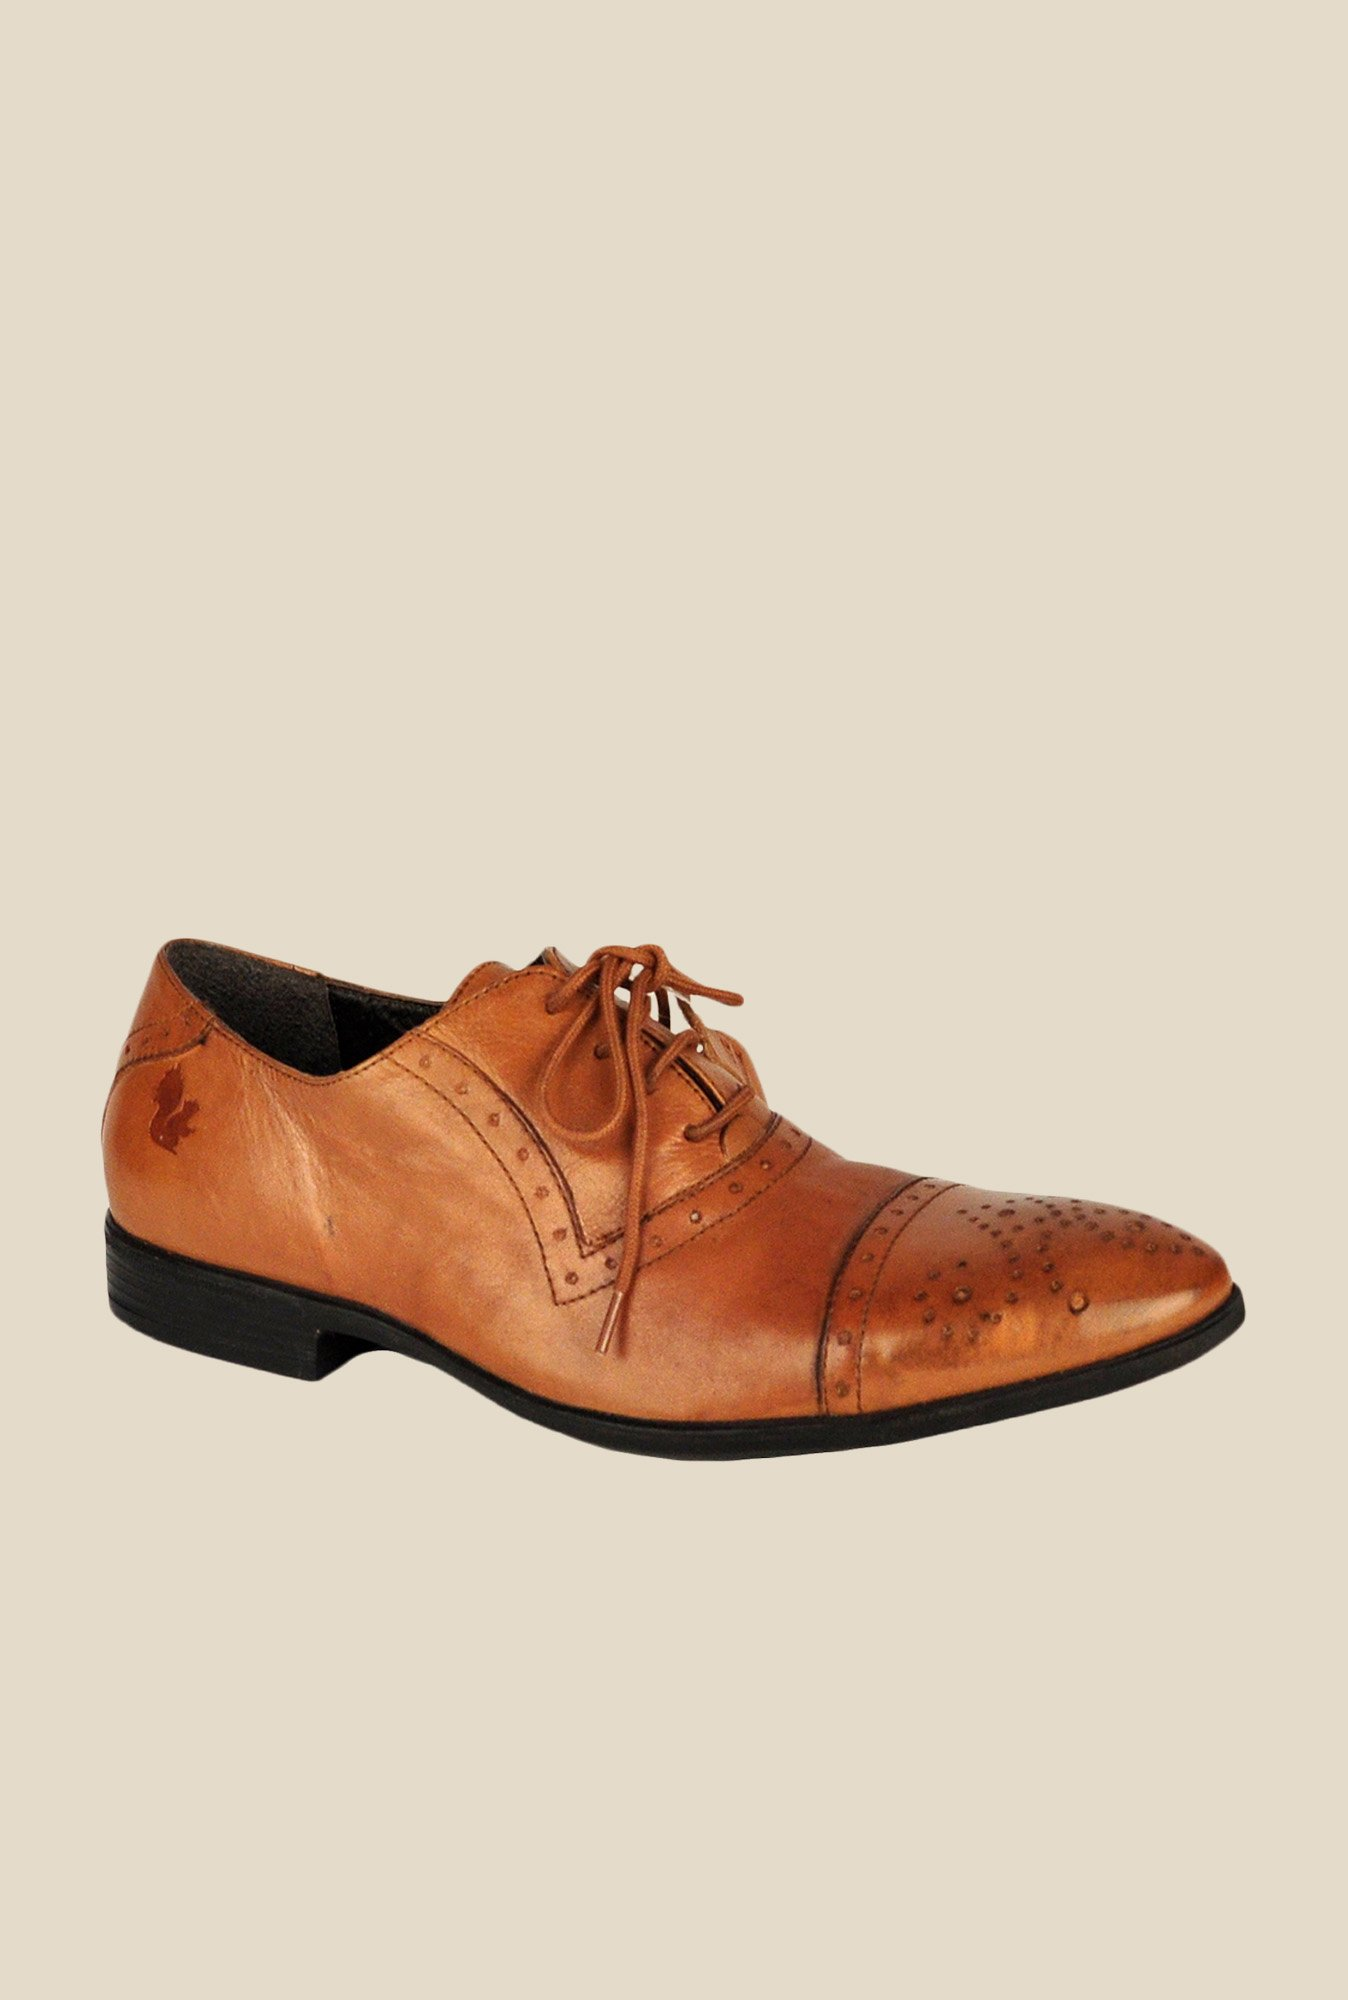 Salt 'n' Pepper Koop Almond Oxford Shoes